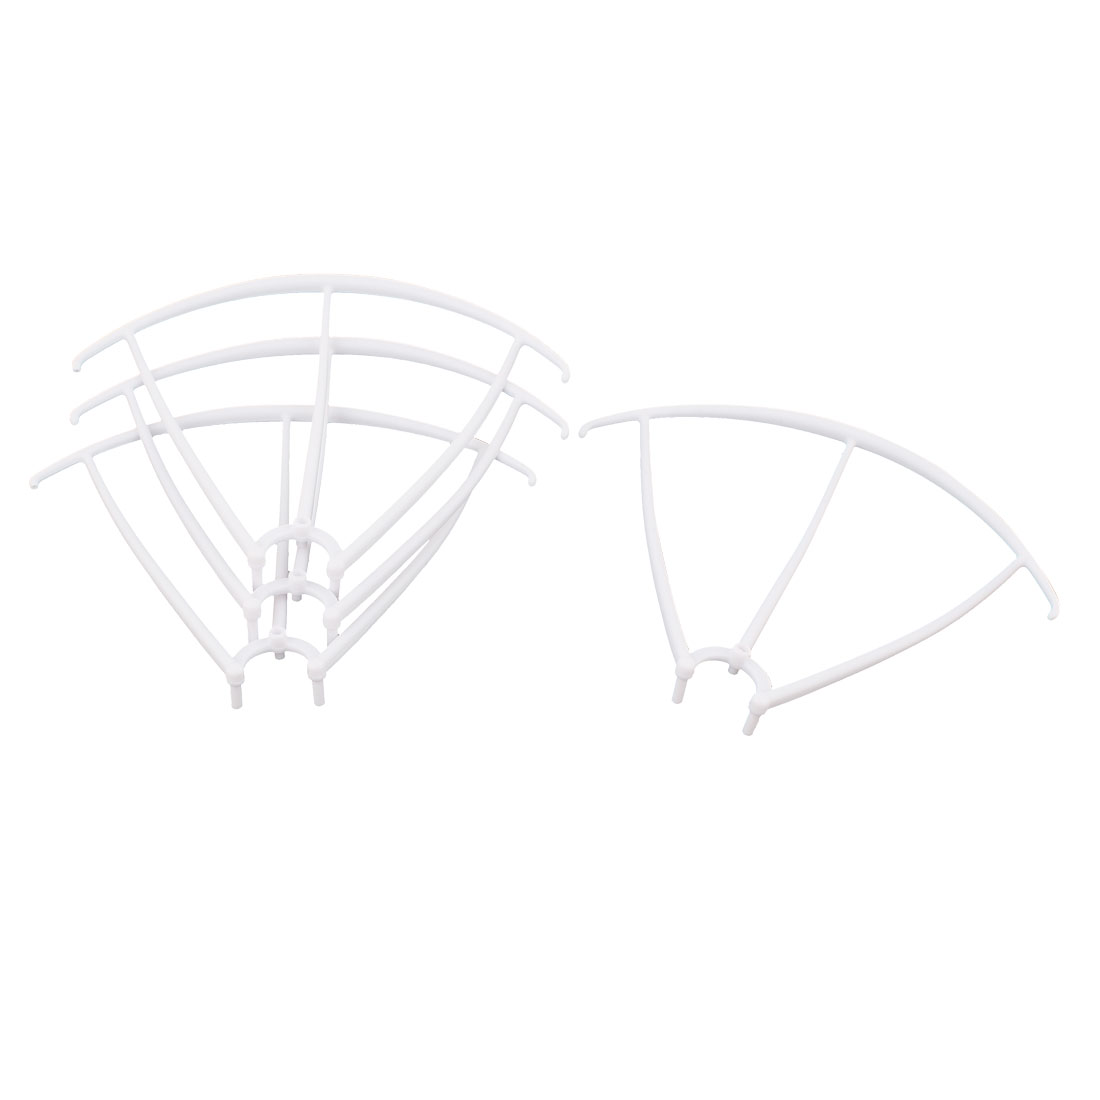 Set Spare Parts Guard Protection Cover Frame White for Syma X5 X5C RC Quadcopter